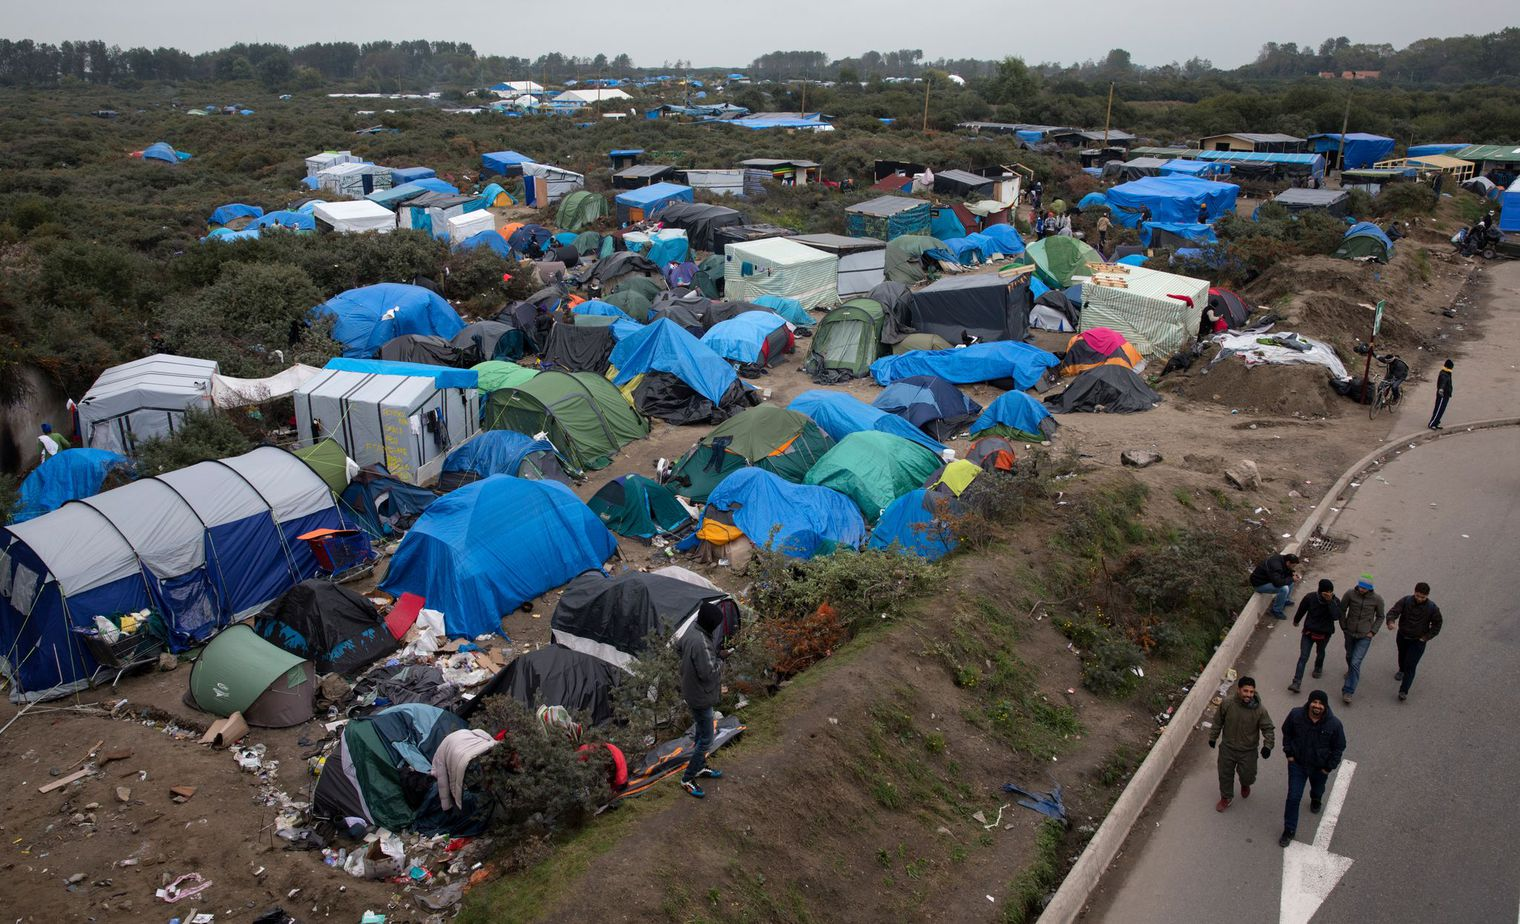 jungle-de-calais-migrants-migrants-walk-past-tents-in-the-new-jungle-make-shift-camp-in-calais_5461950